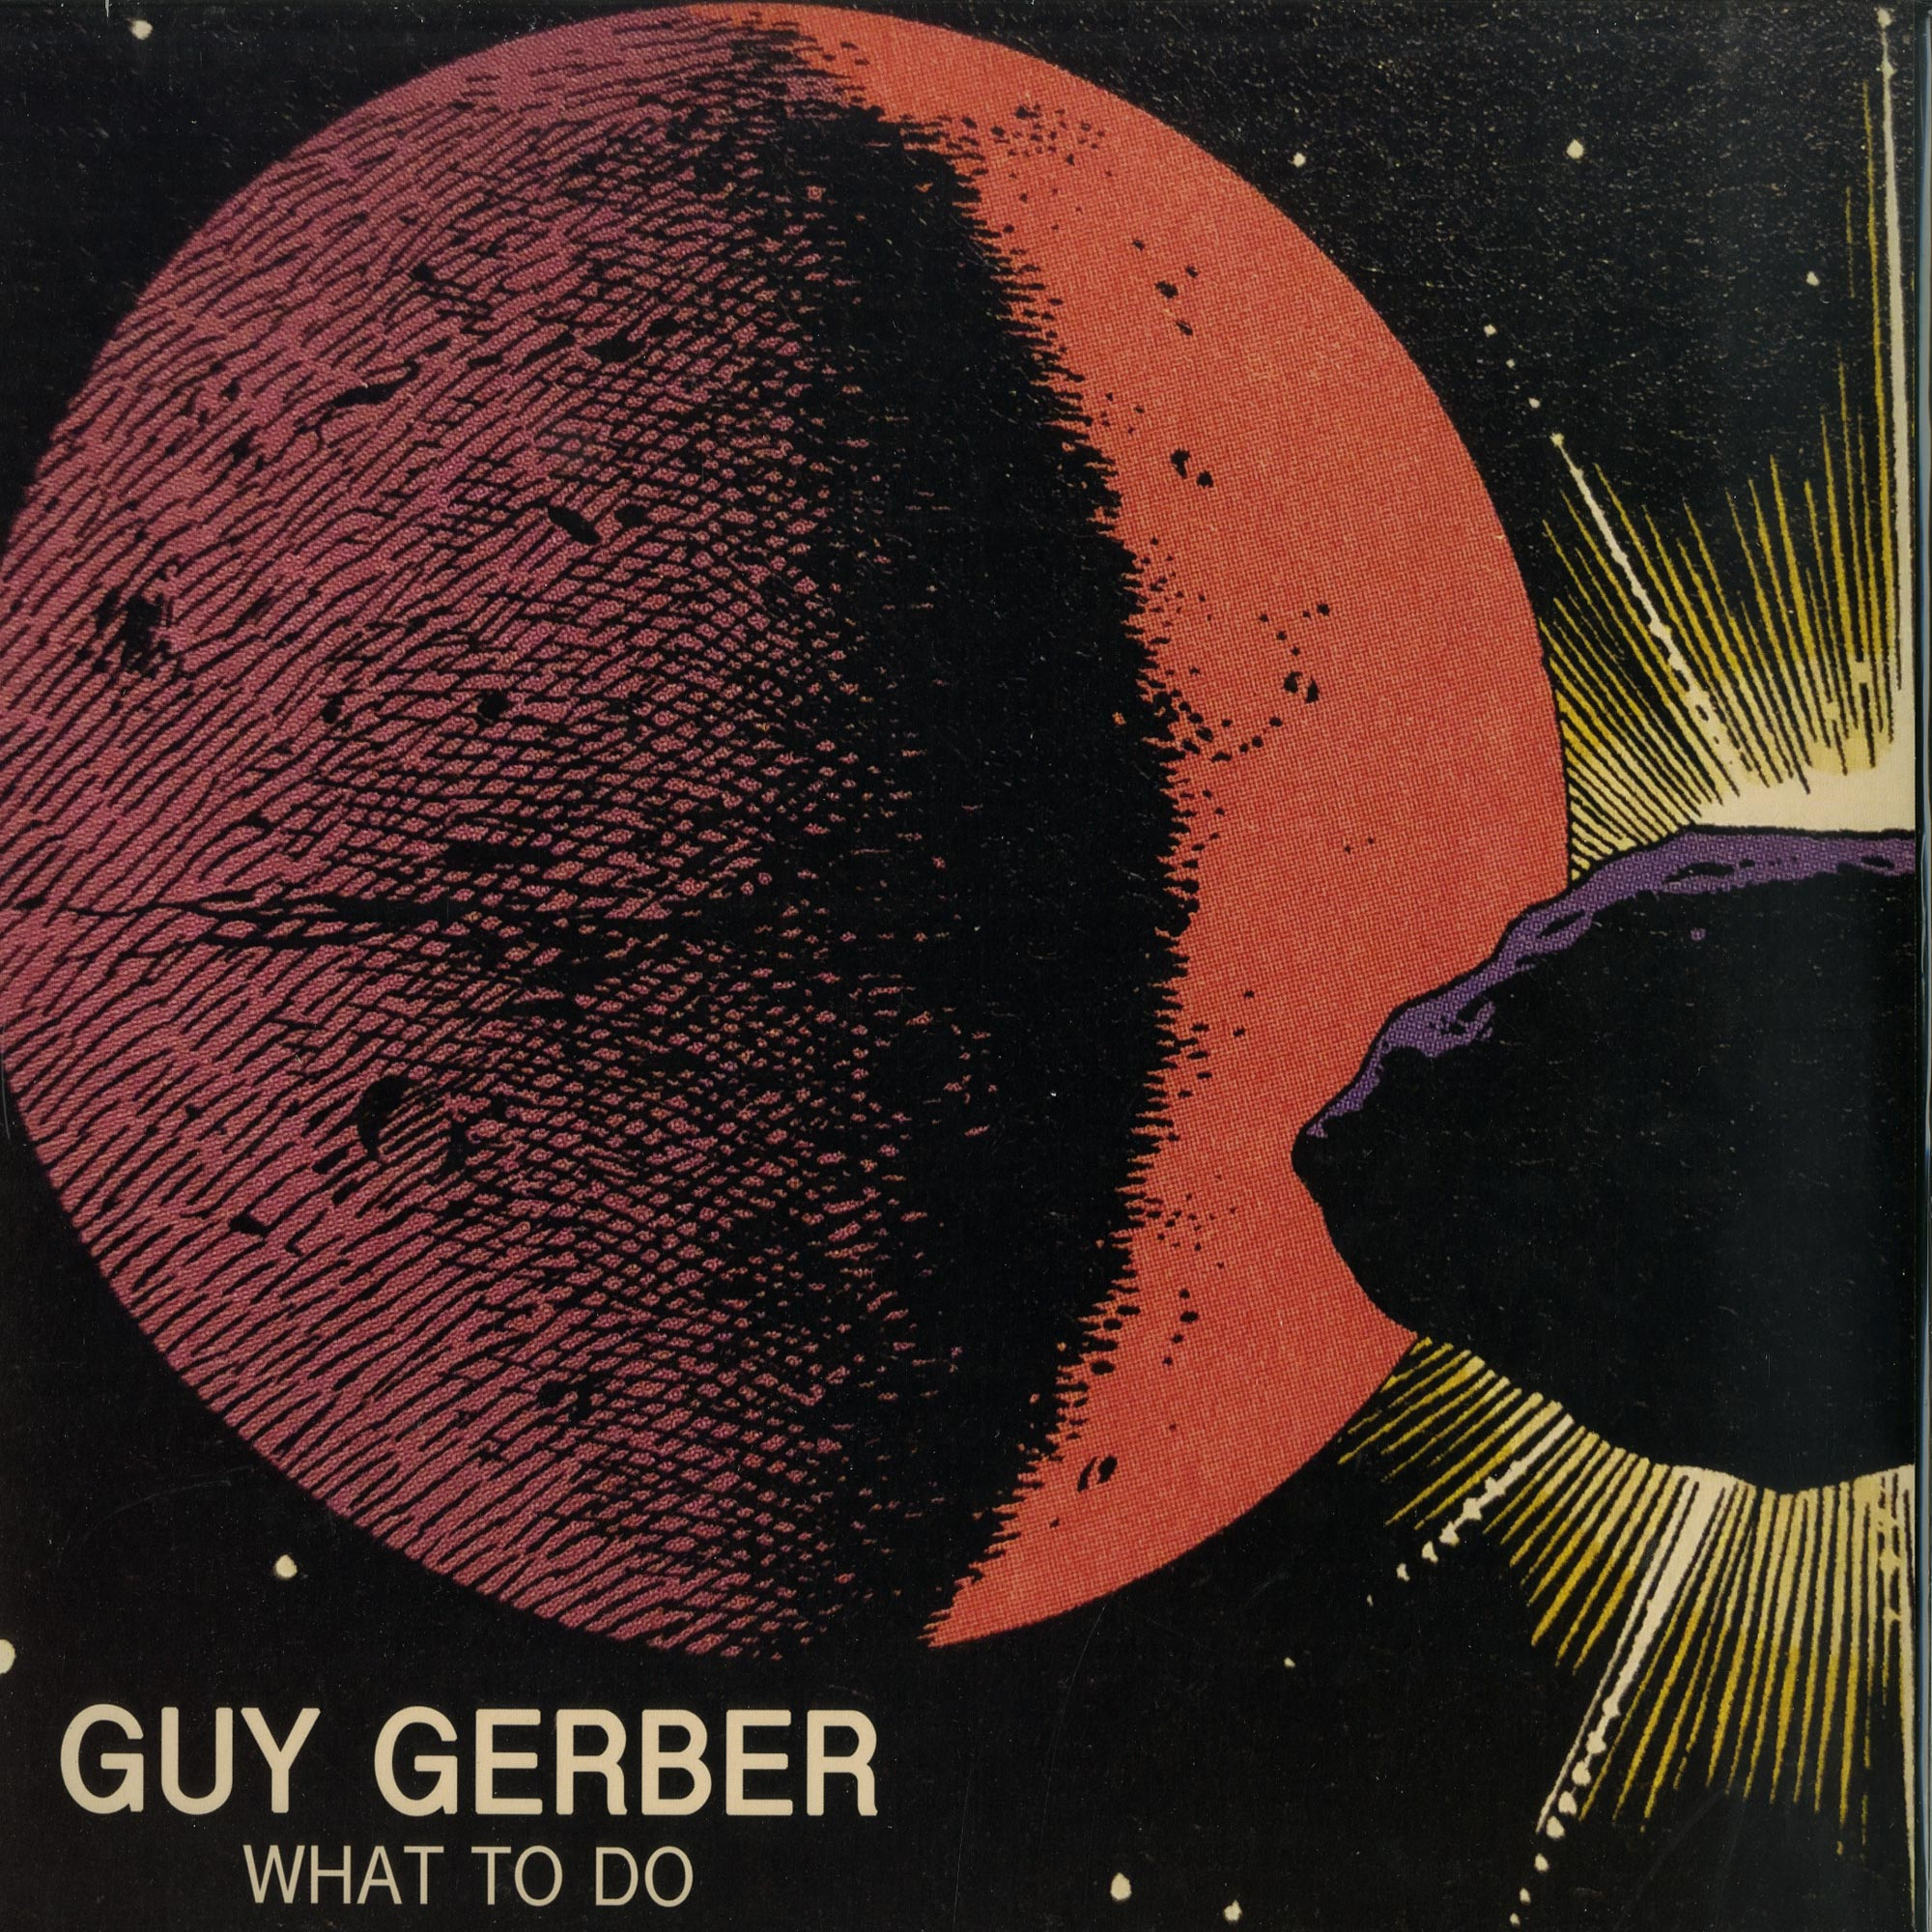 Guy Gerber - WHAT TO DO